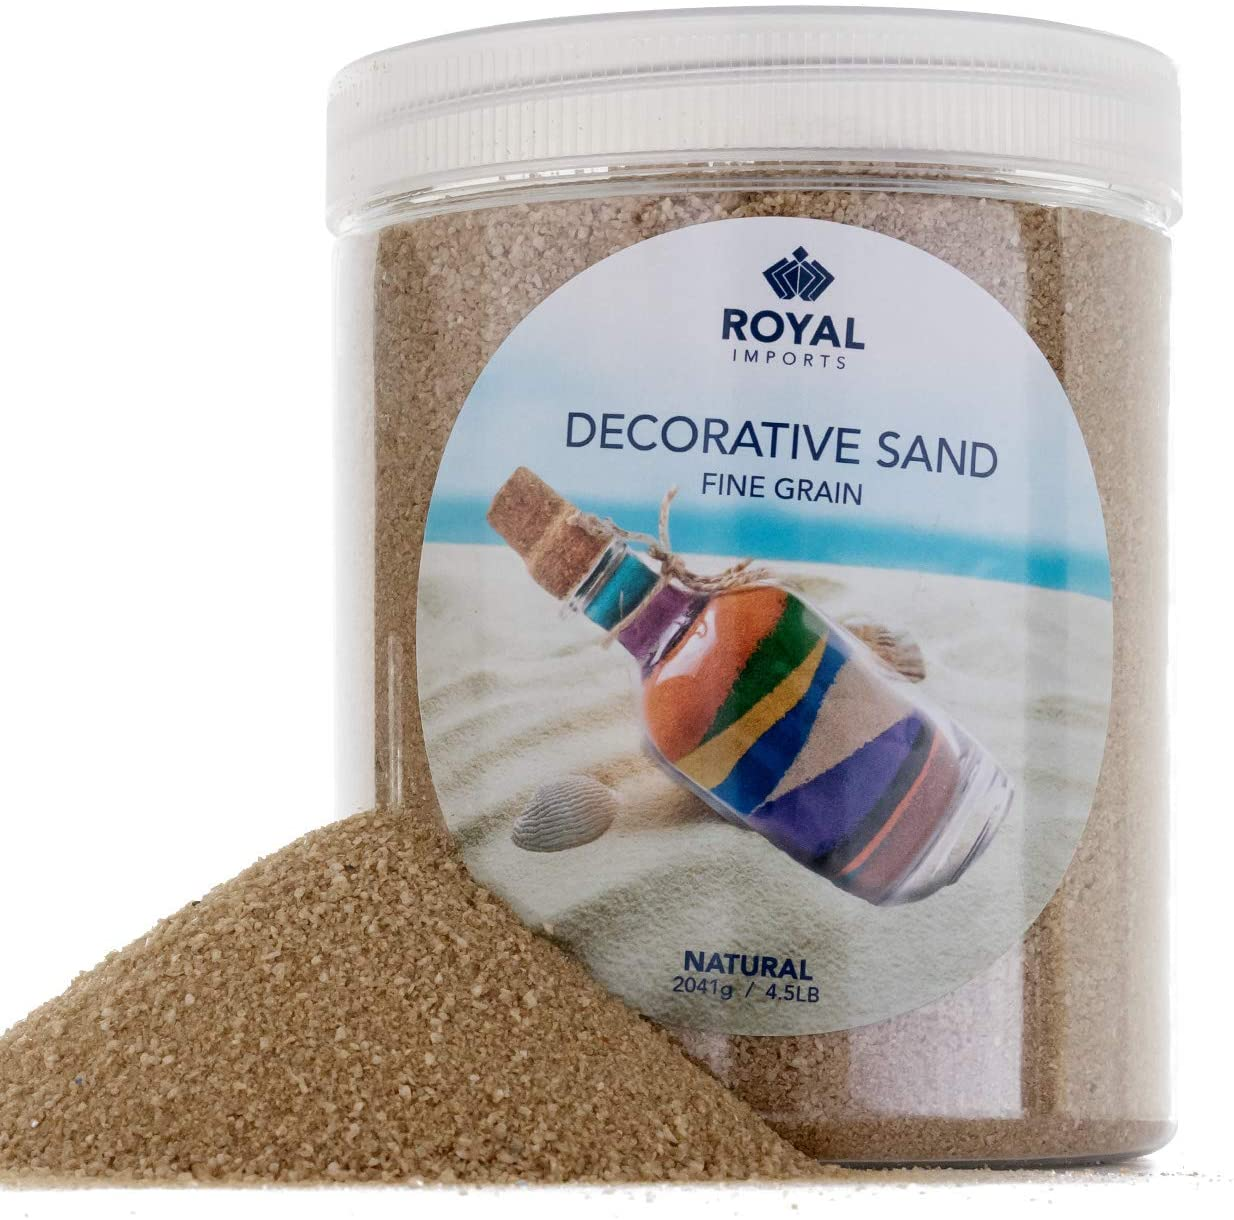 Royal Imports 4.5 LBS Colored Decorative Beach Sand for Vase Filler, Wedding, Home Décor, Crafts and Therapy Play, Natural Beige